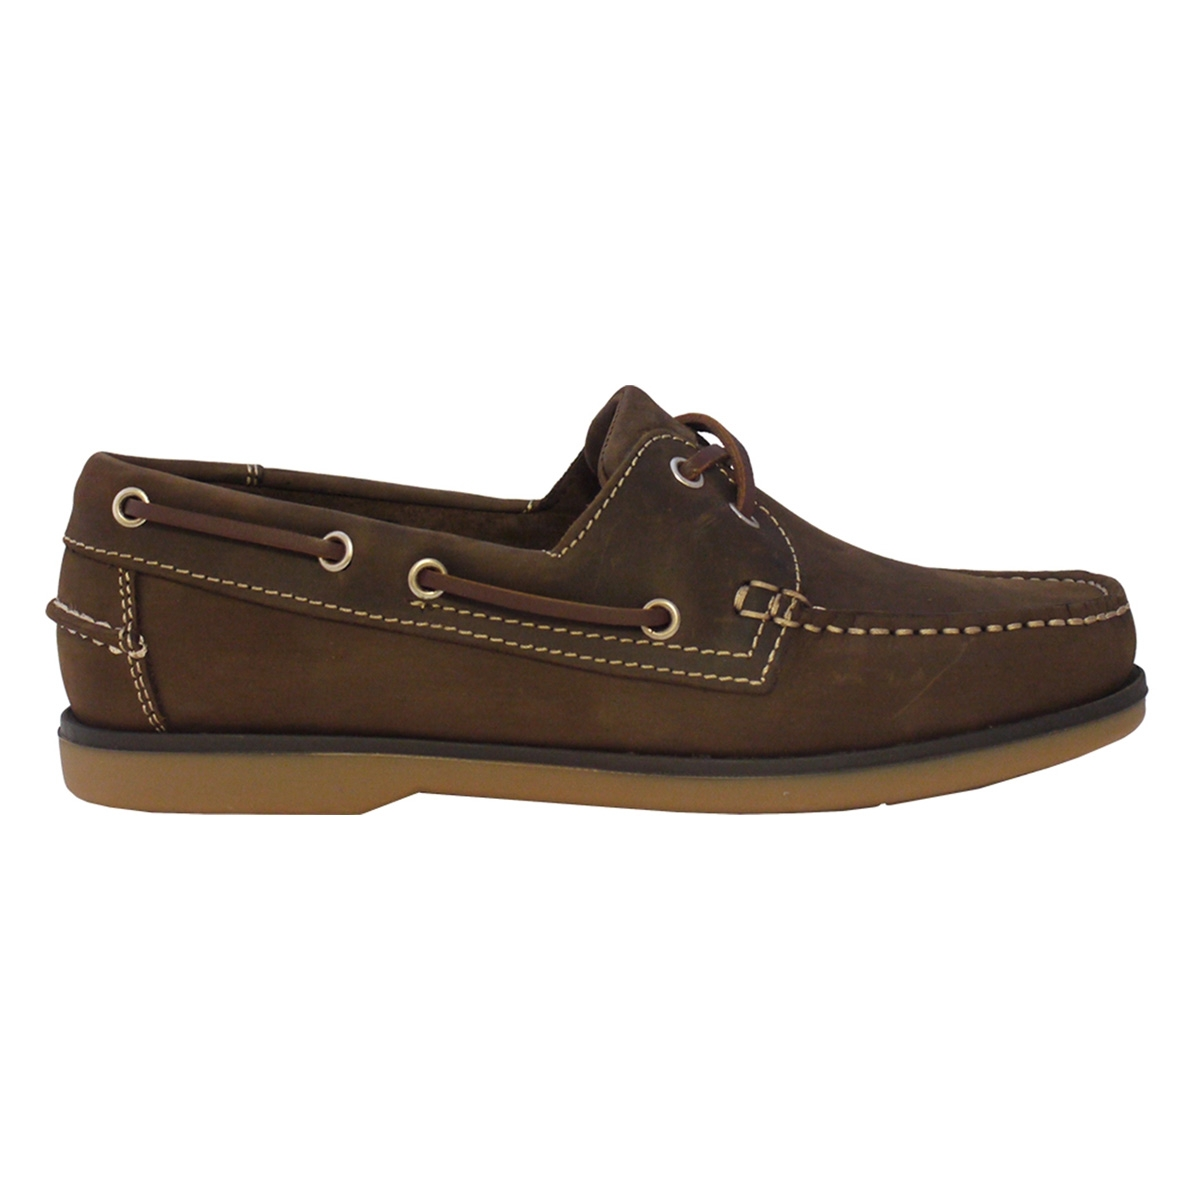 ... Image of Kanyon Outdoor Capri Ladies Boat Shoes (Women s) - Brown Crazy  Horse 5ed9e3e64